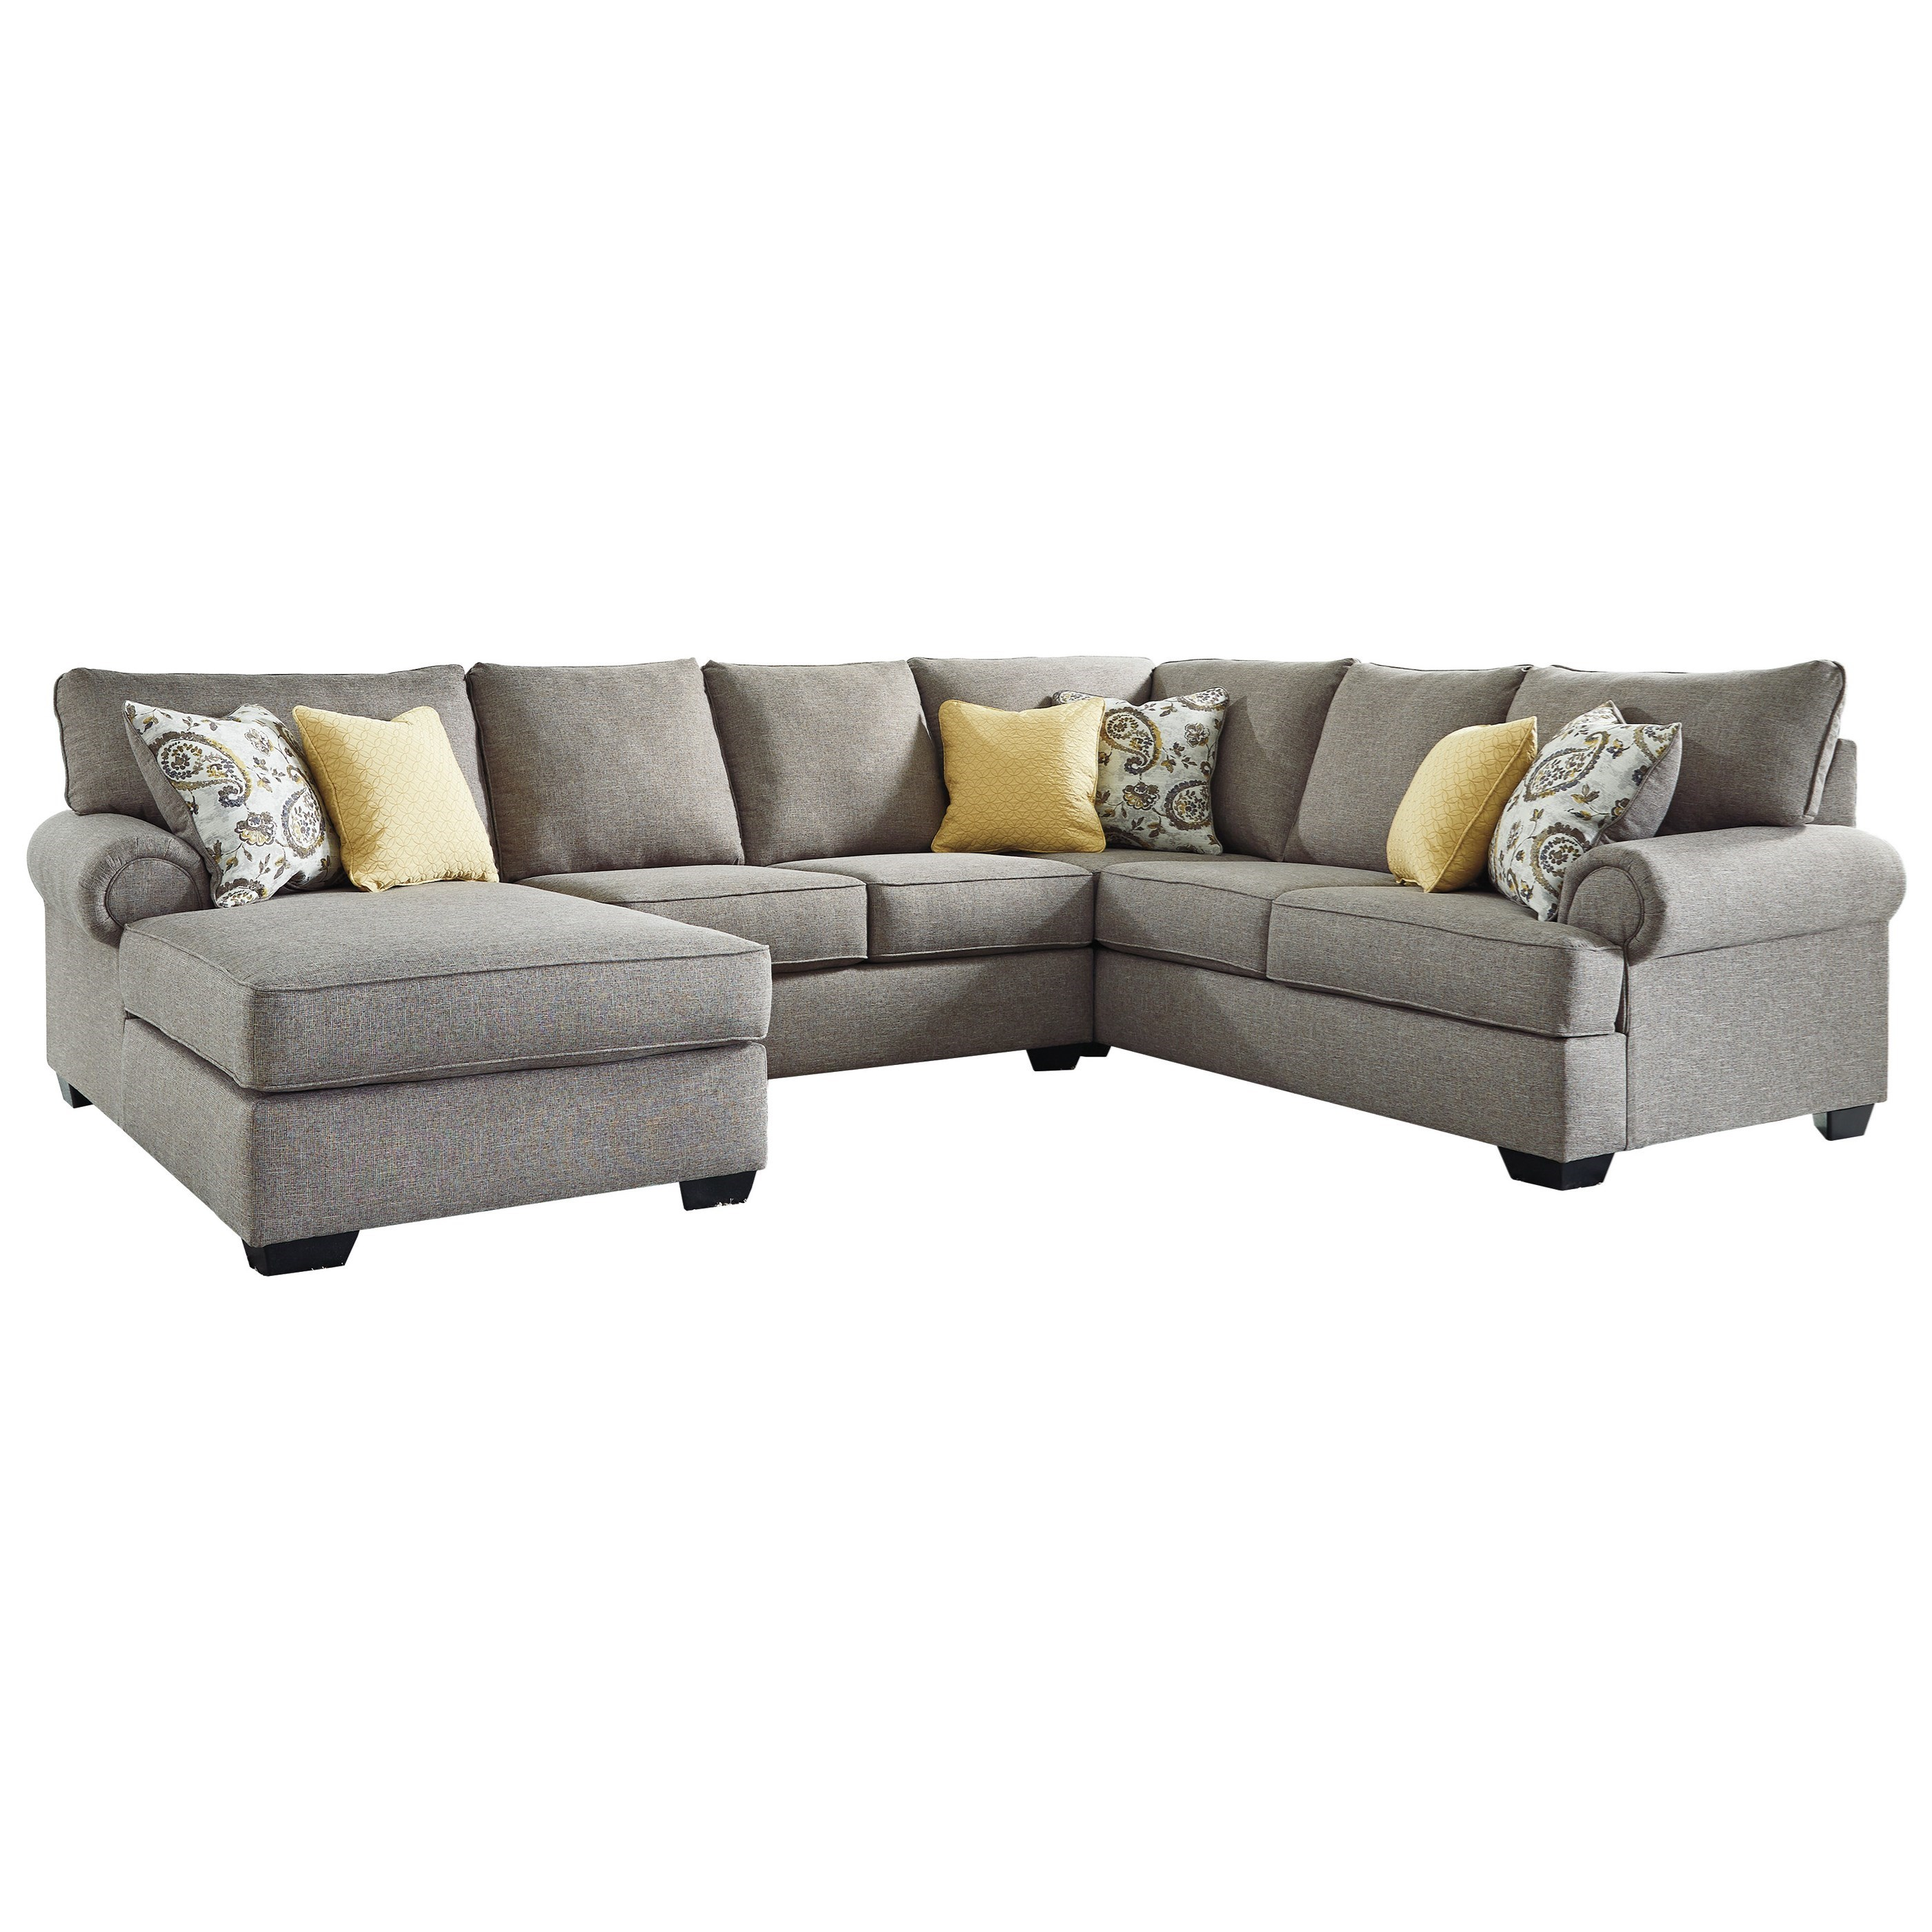 Websites For Furniture: Benchcraft By Ashley Renchen Sectional